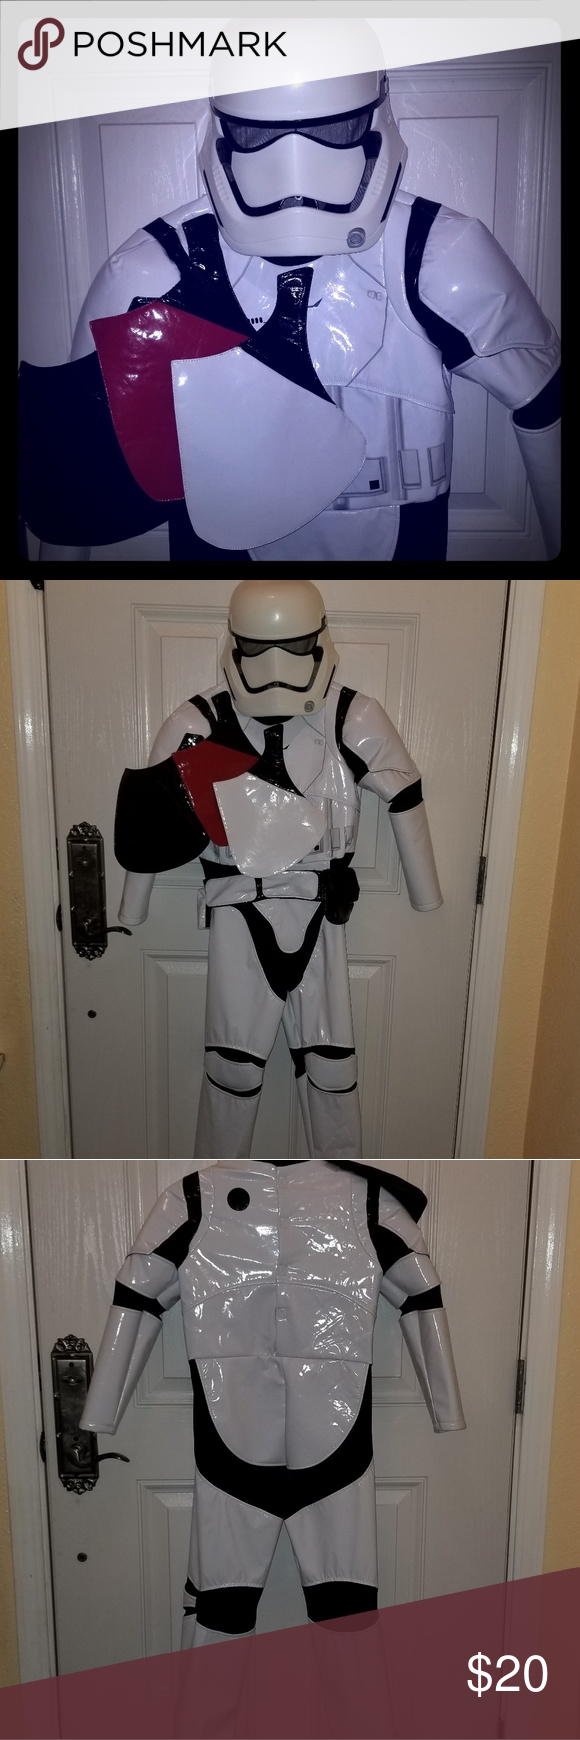 Multi rank Star Wars Stormtrooper Costume Boys Disney Store